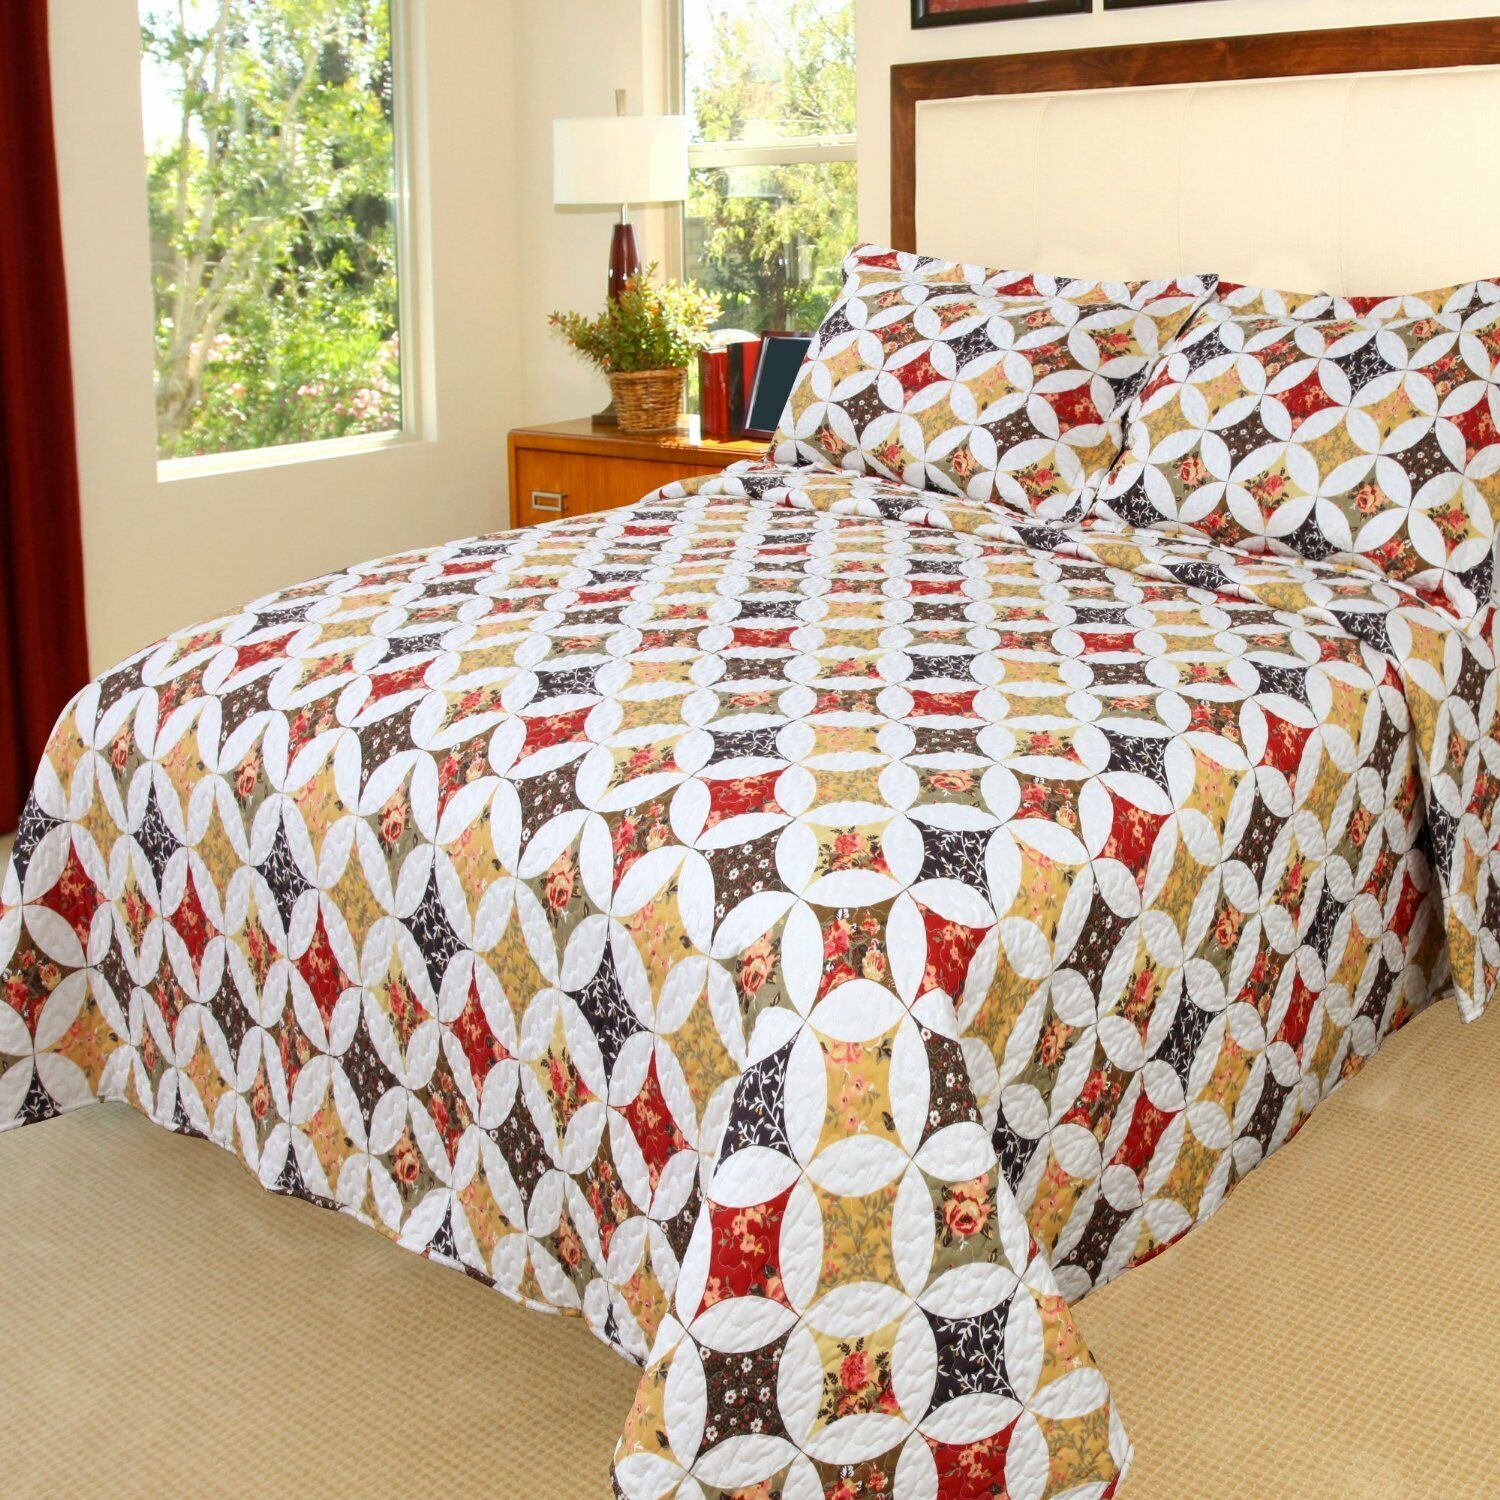 Lavish Home Juliette Embroidered 3 Piece Quilt Set King For Sale Online Ebay